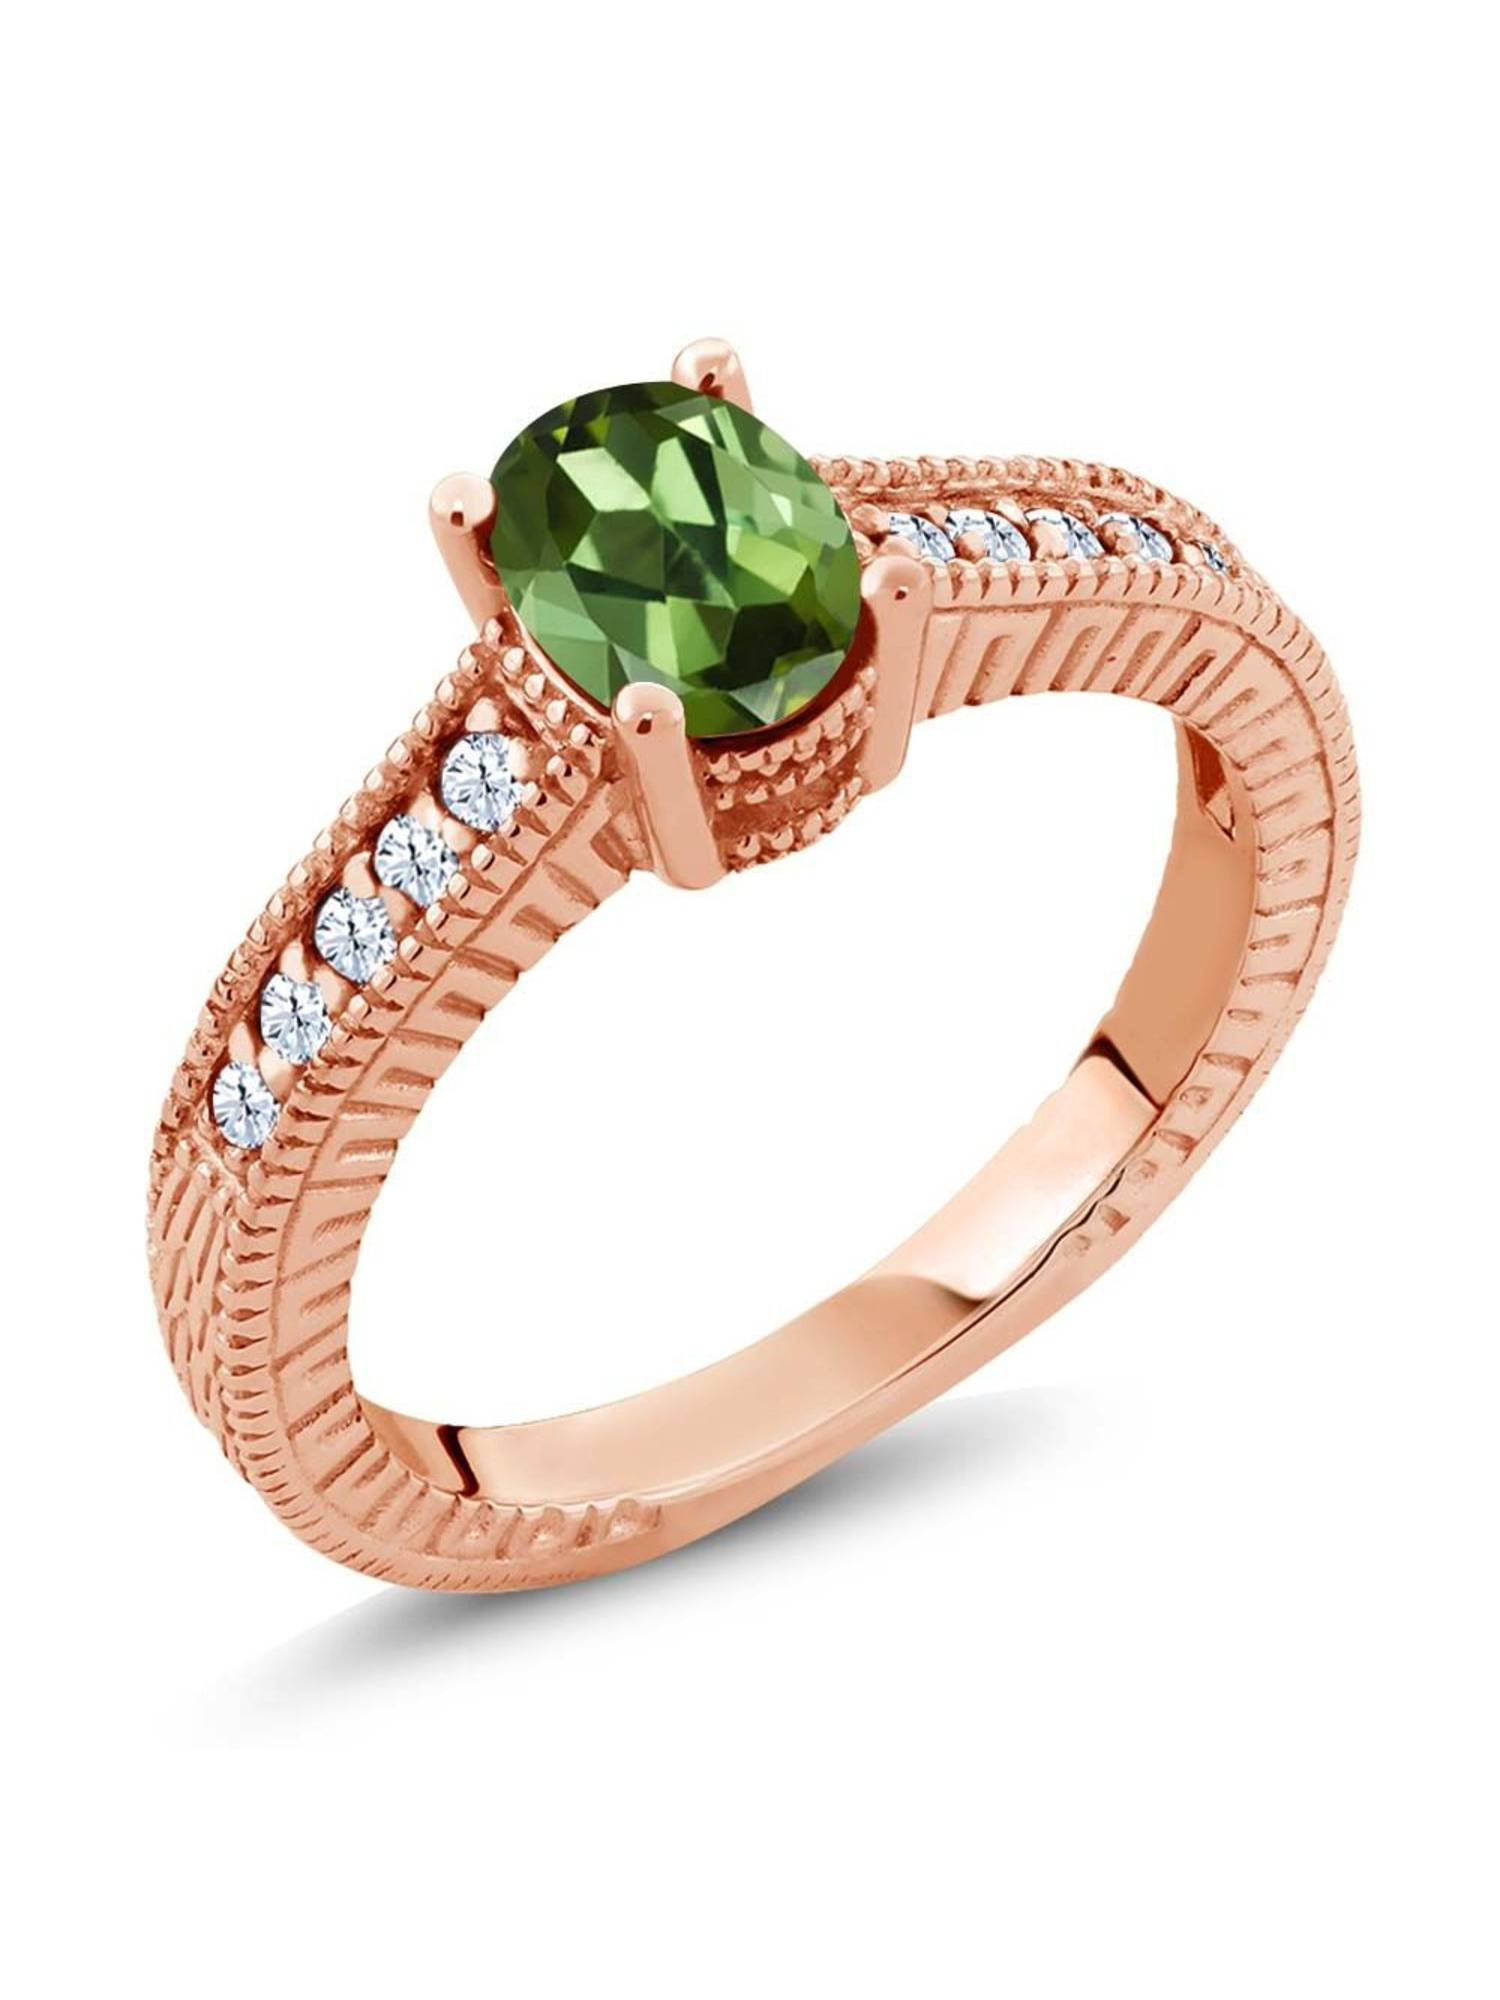 1.15 Ct Oval Green Tourmaline 18K Rose Gold Plated Silver Ring by